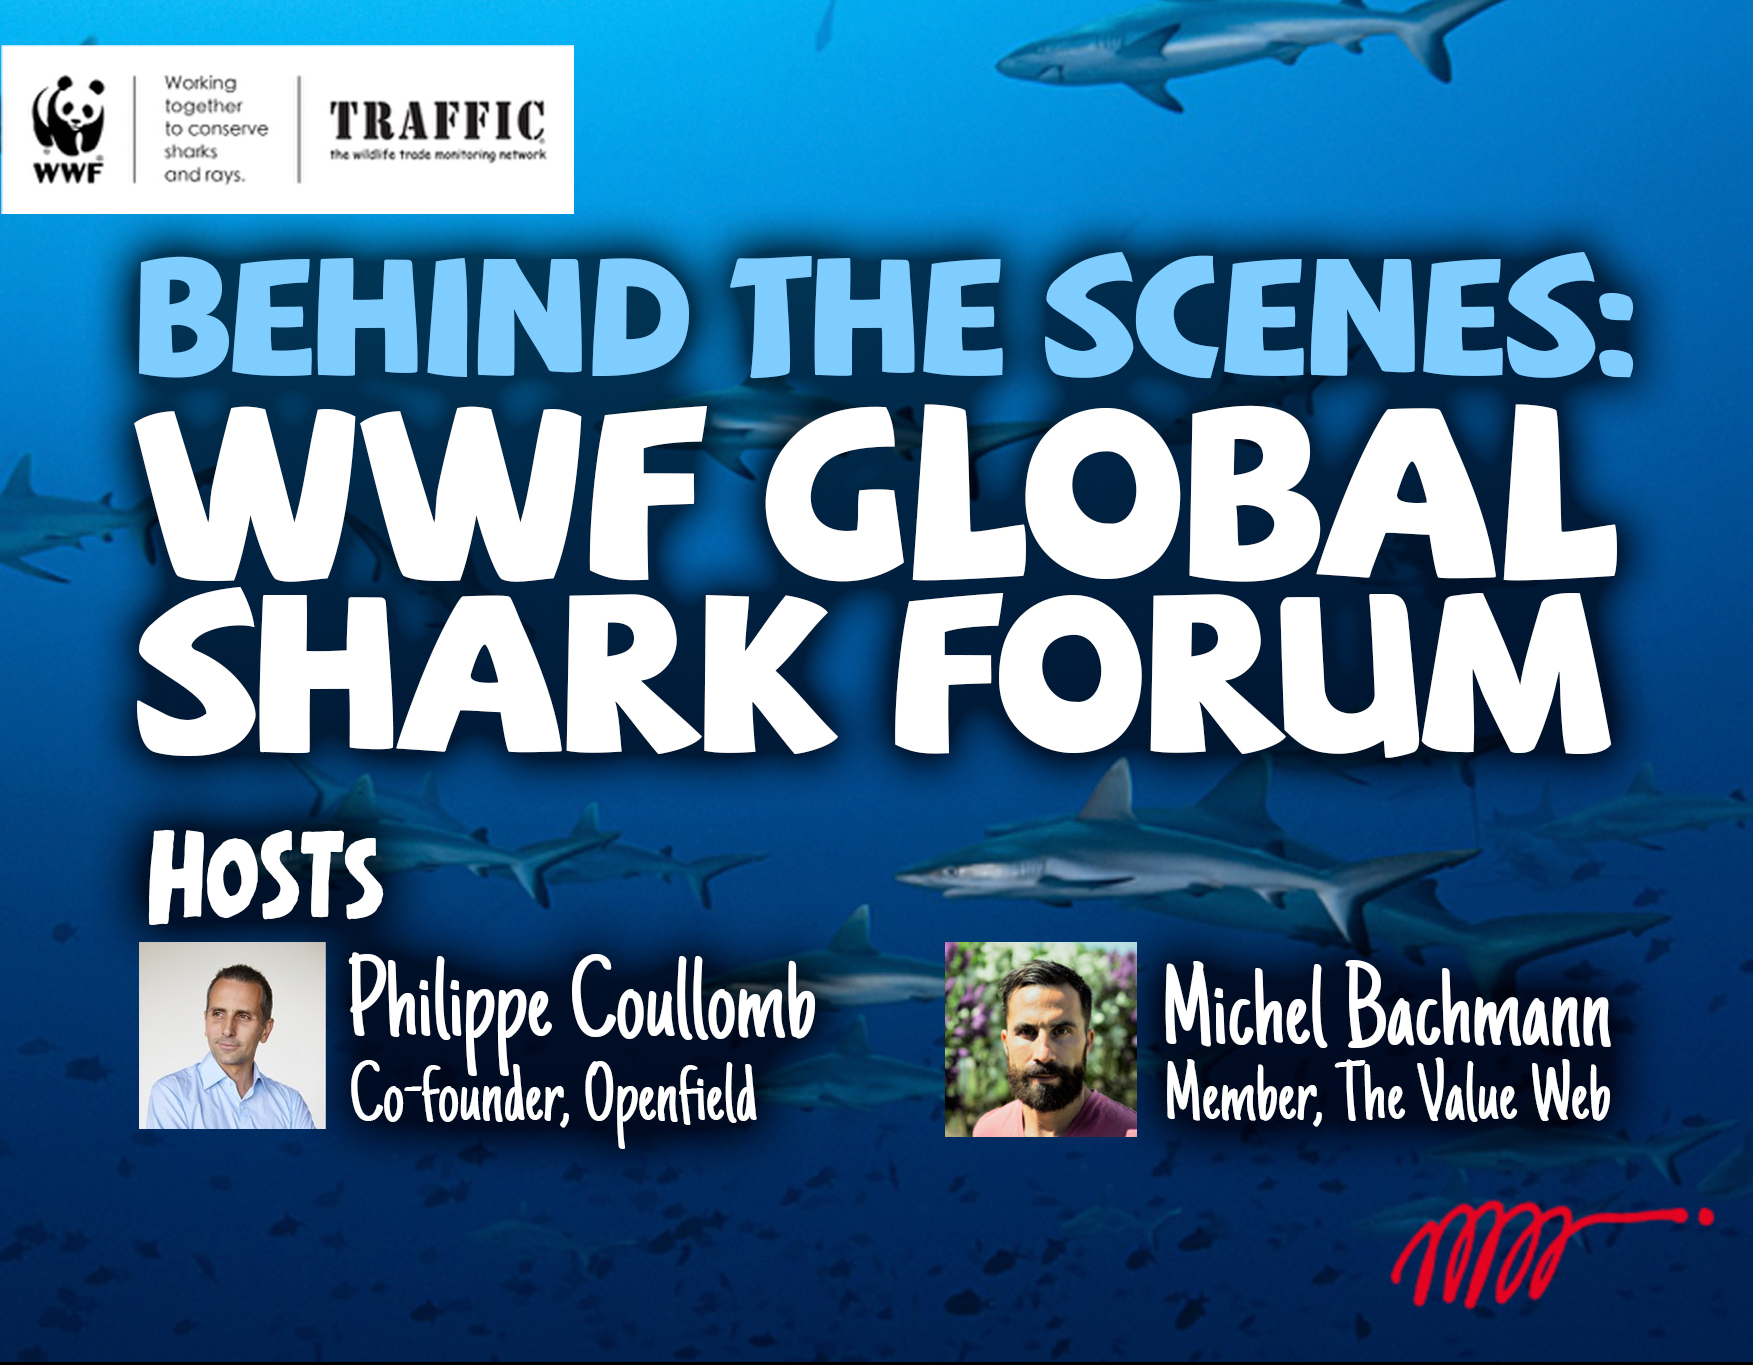 WWF Global Shark Forum